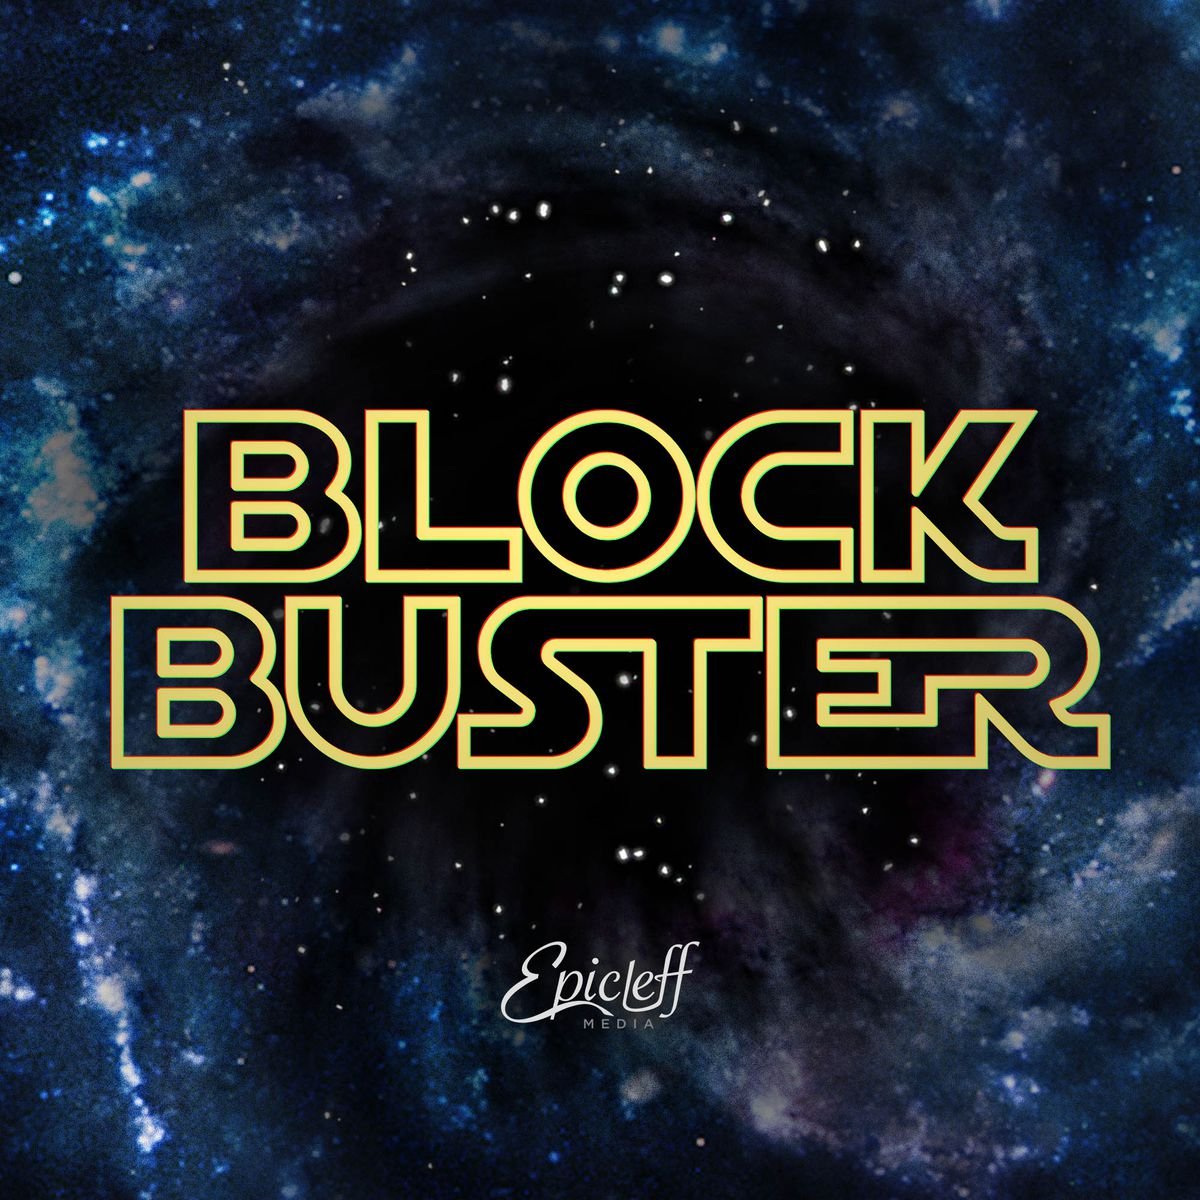 Blockbuster is a heartfelt podcast series about George Lucas and Steven Spielberg 1